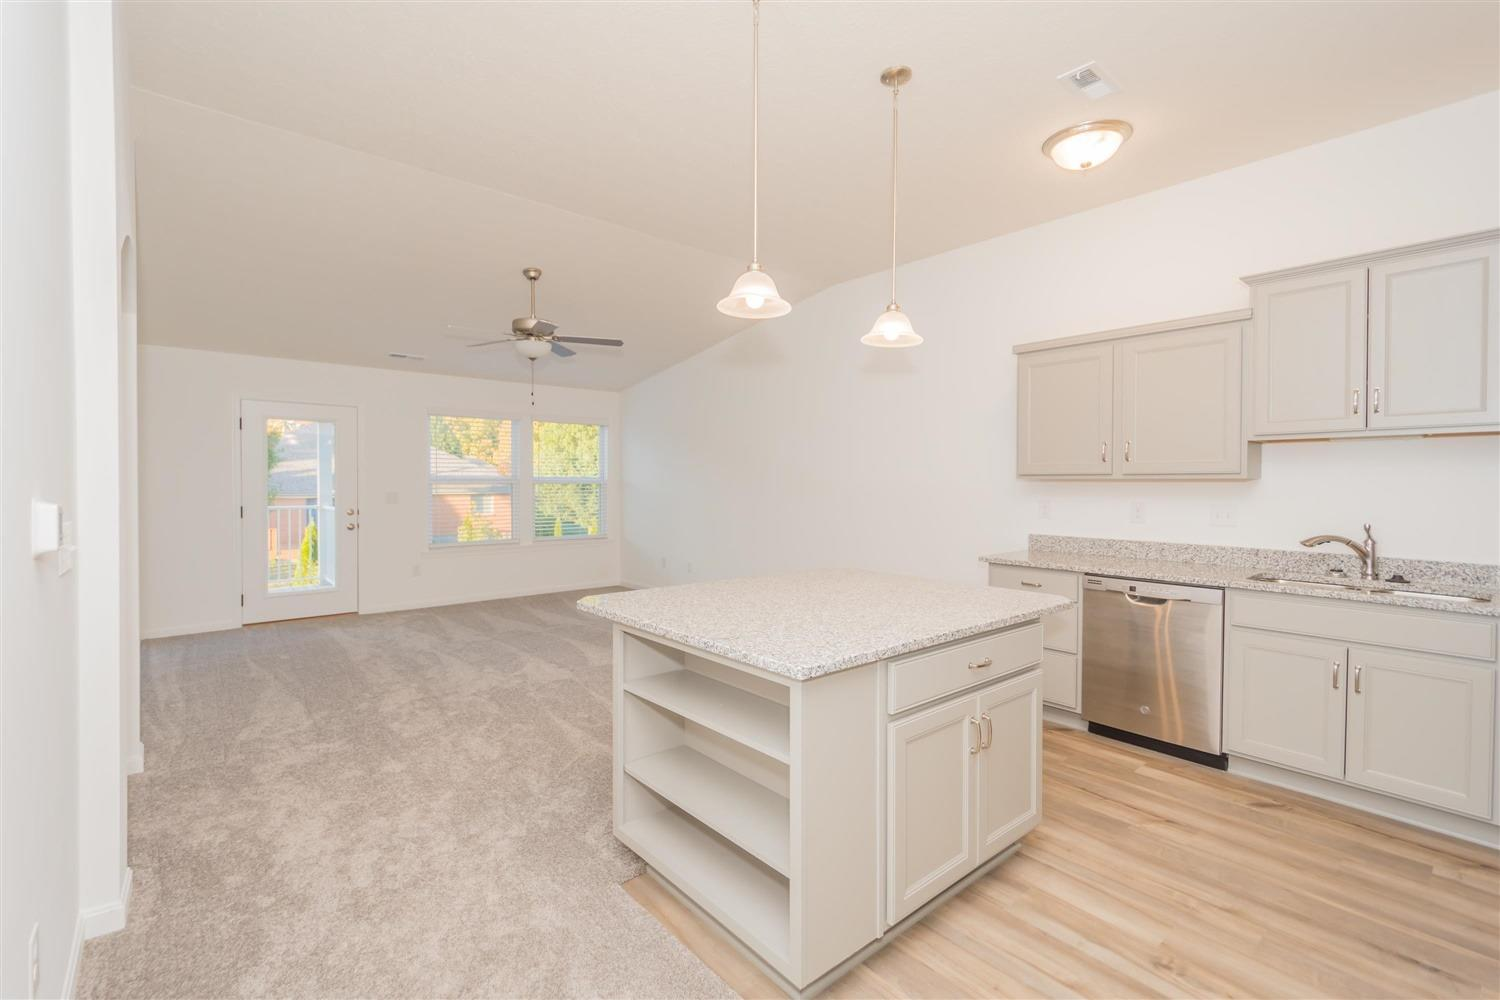 Photo 2 for 266 Old Pond Rd #23202 Springboro, OH 45066